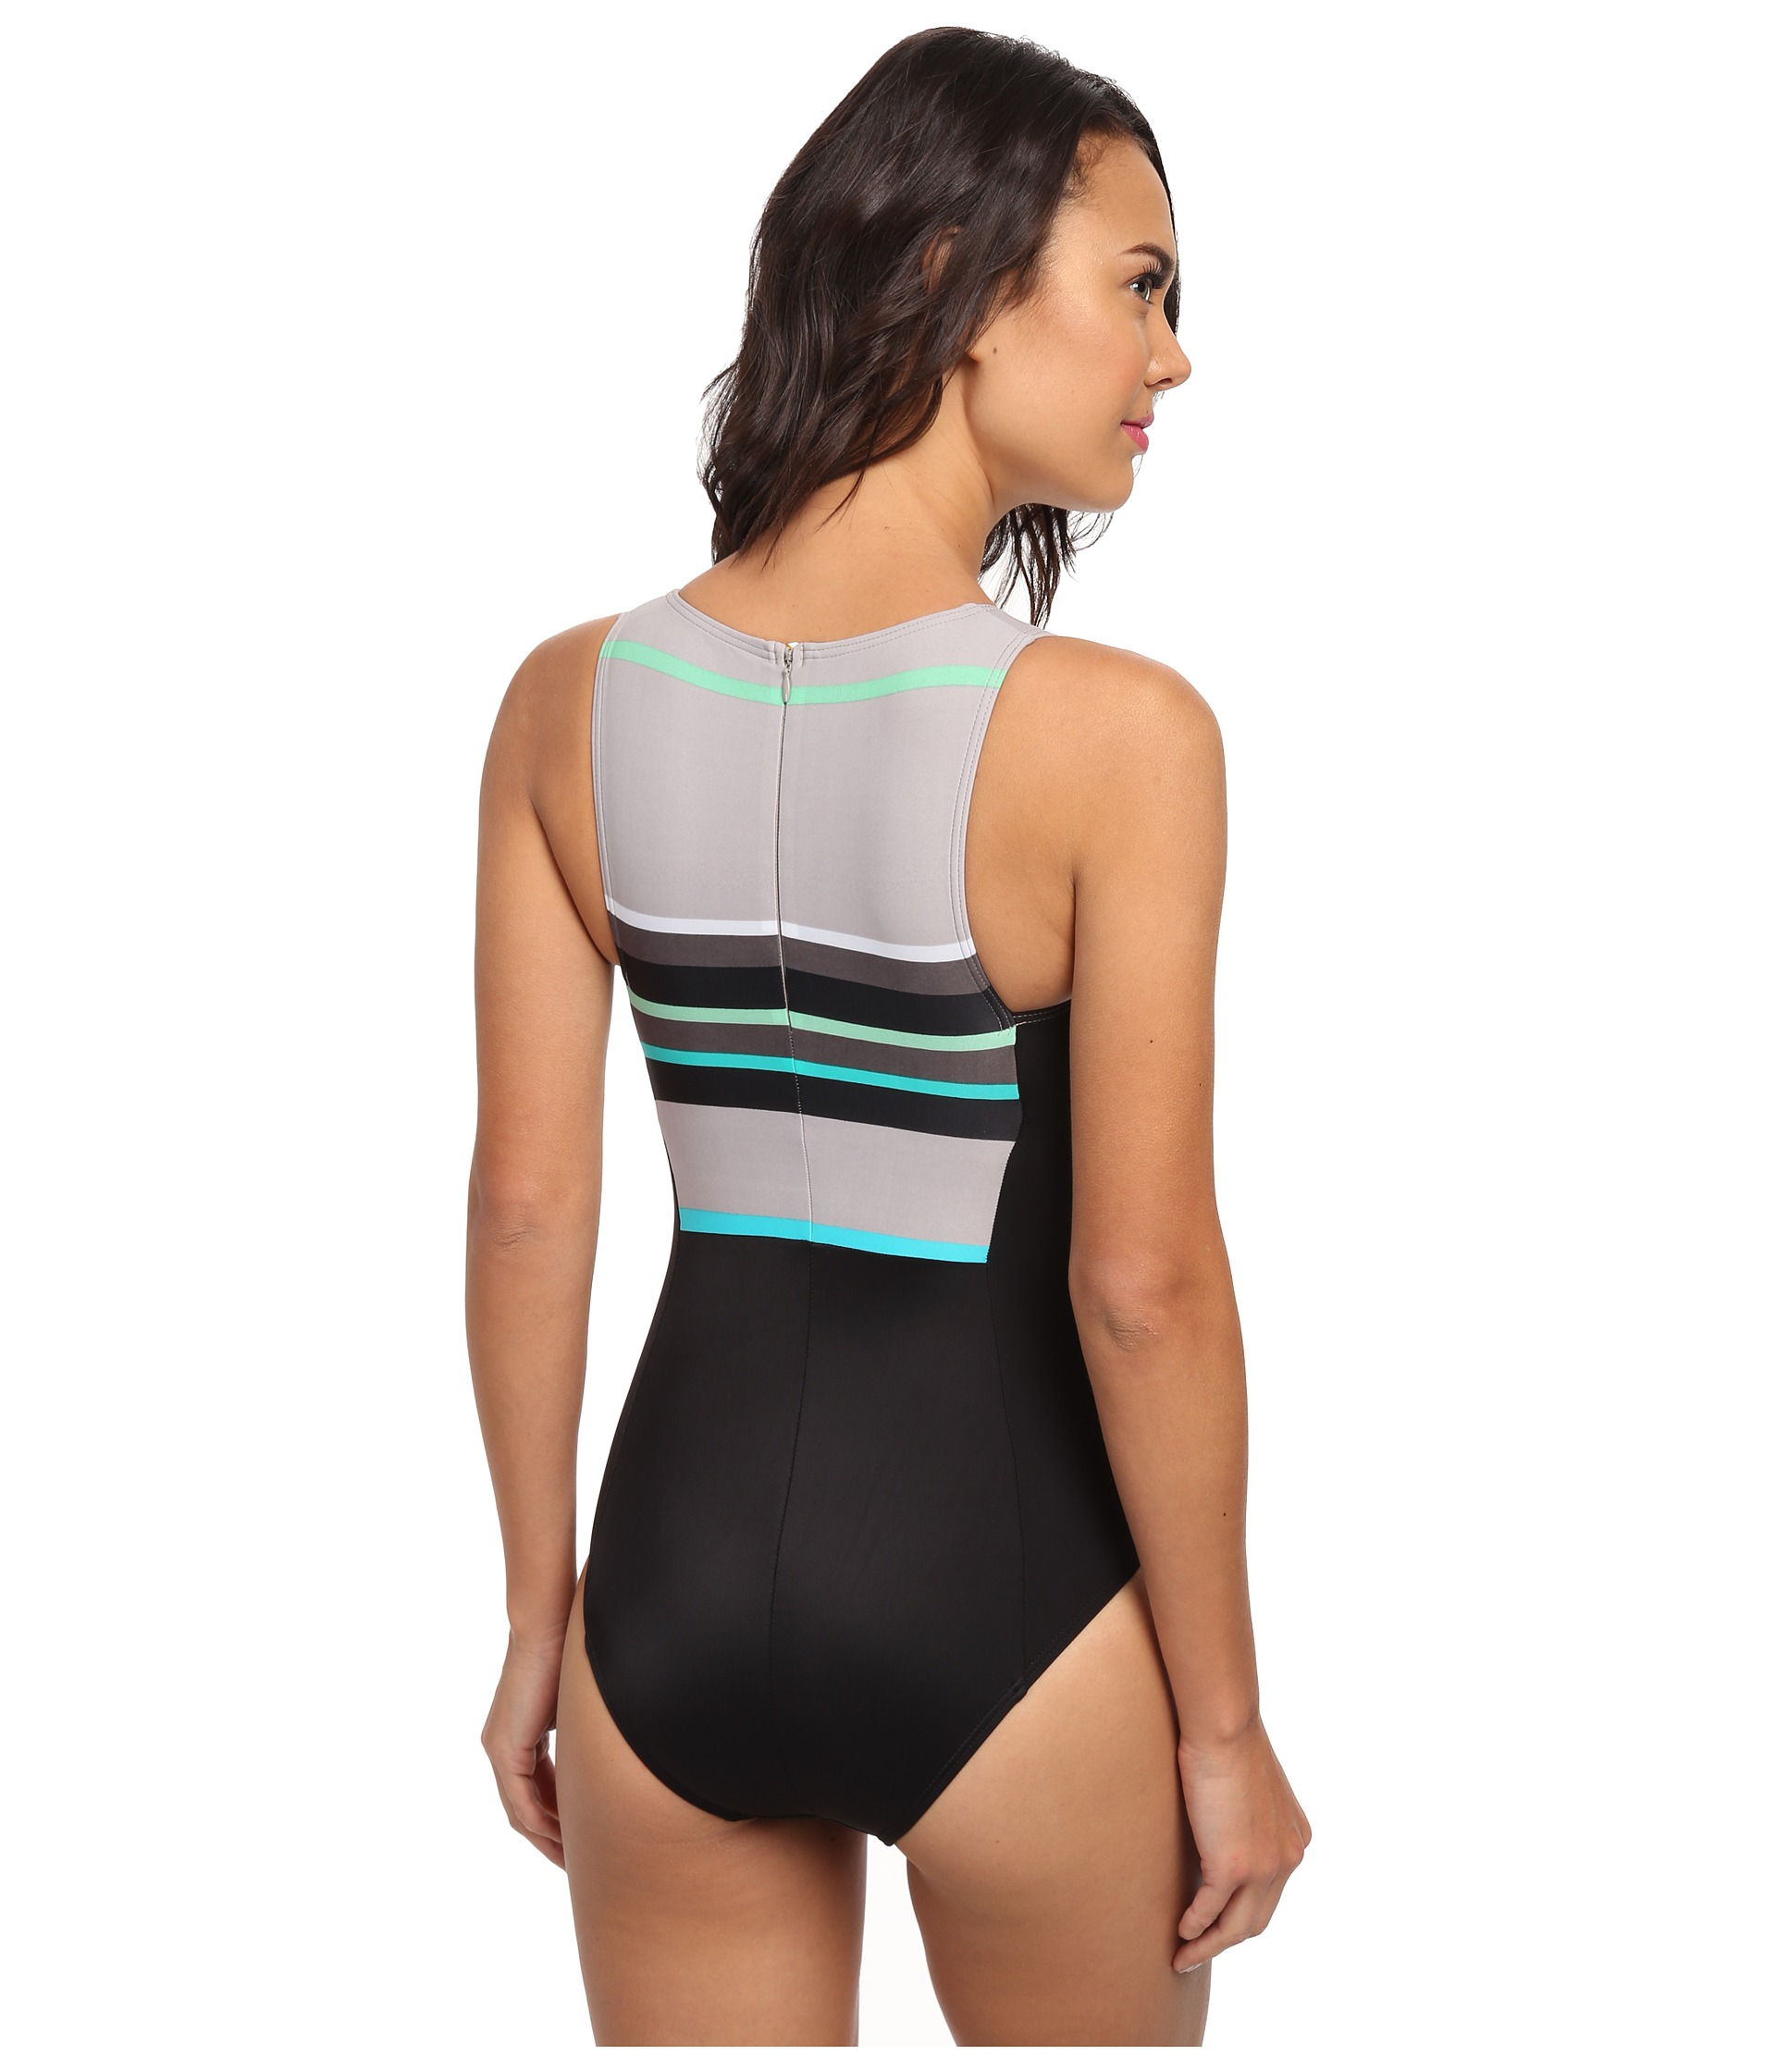 7b505c30697 DKNY Slip Stripes High Neck Maillot One-piece in Black - Lyst